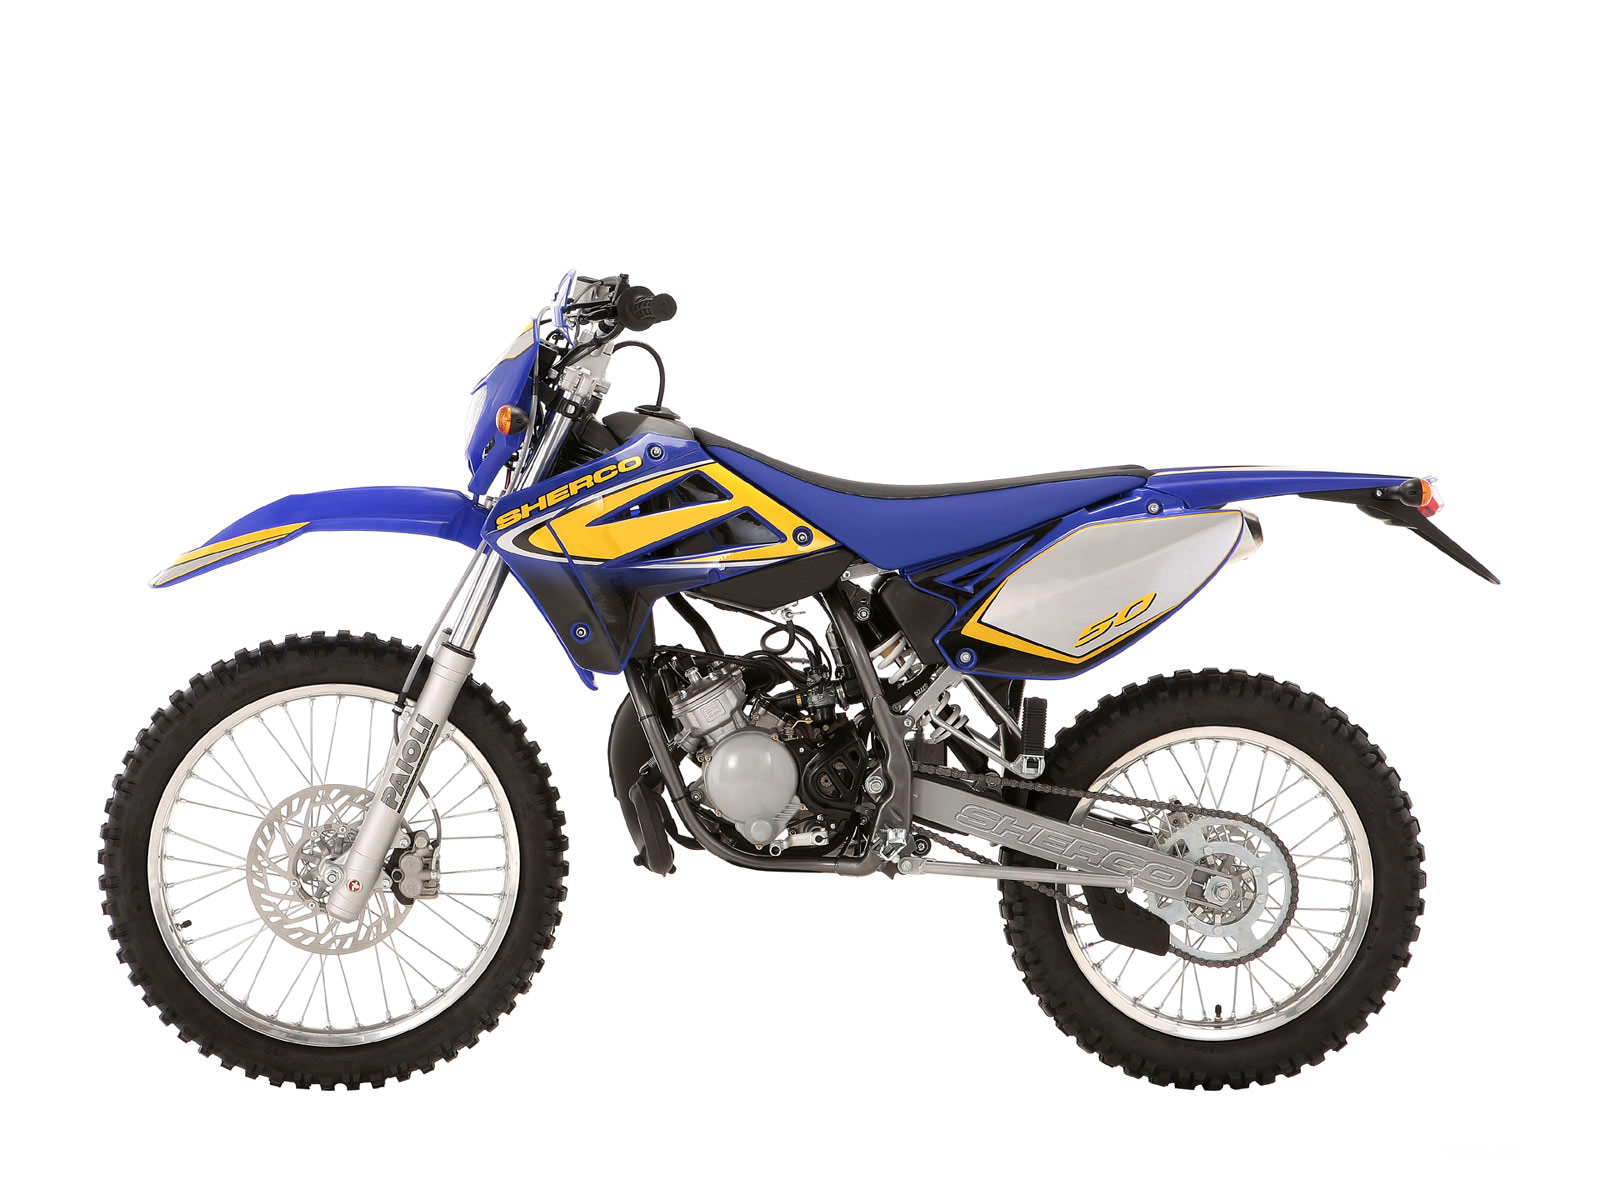 Sherco 5.1 4T Supermotard 2008 images #124434